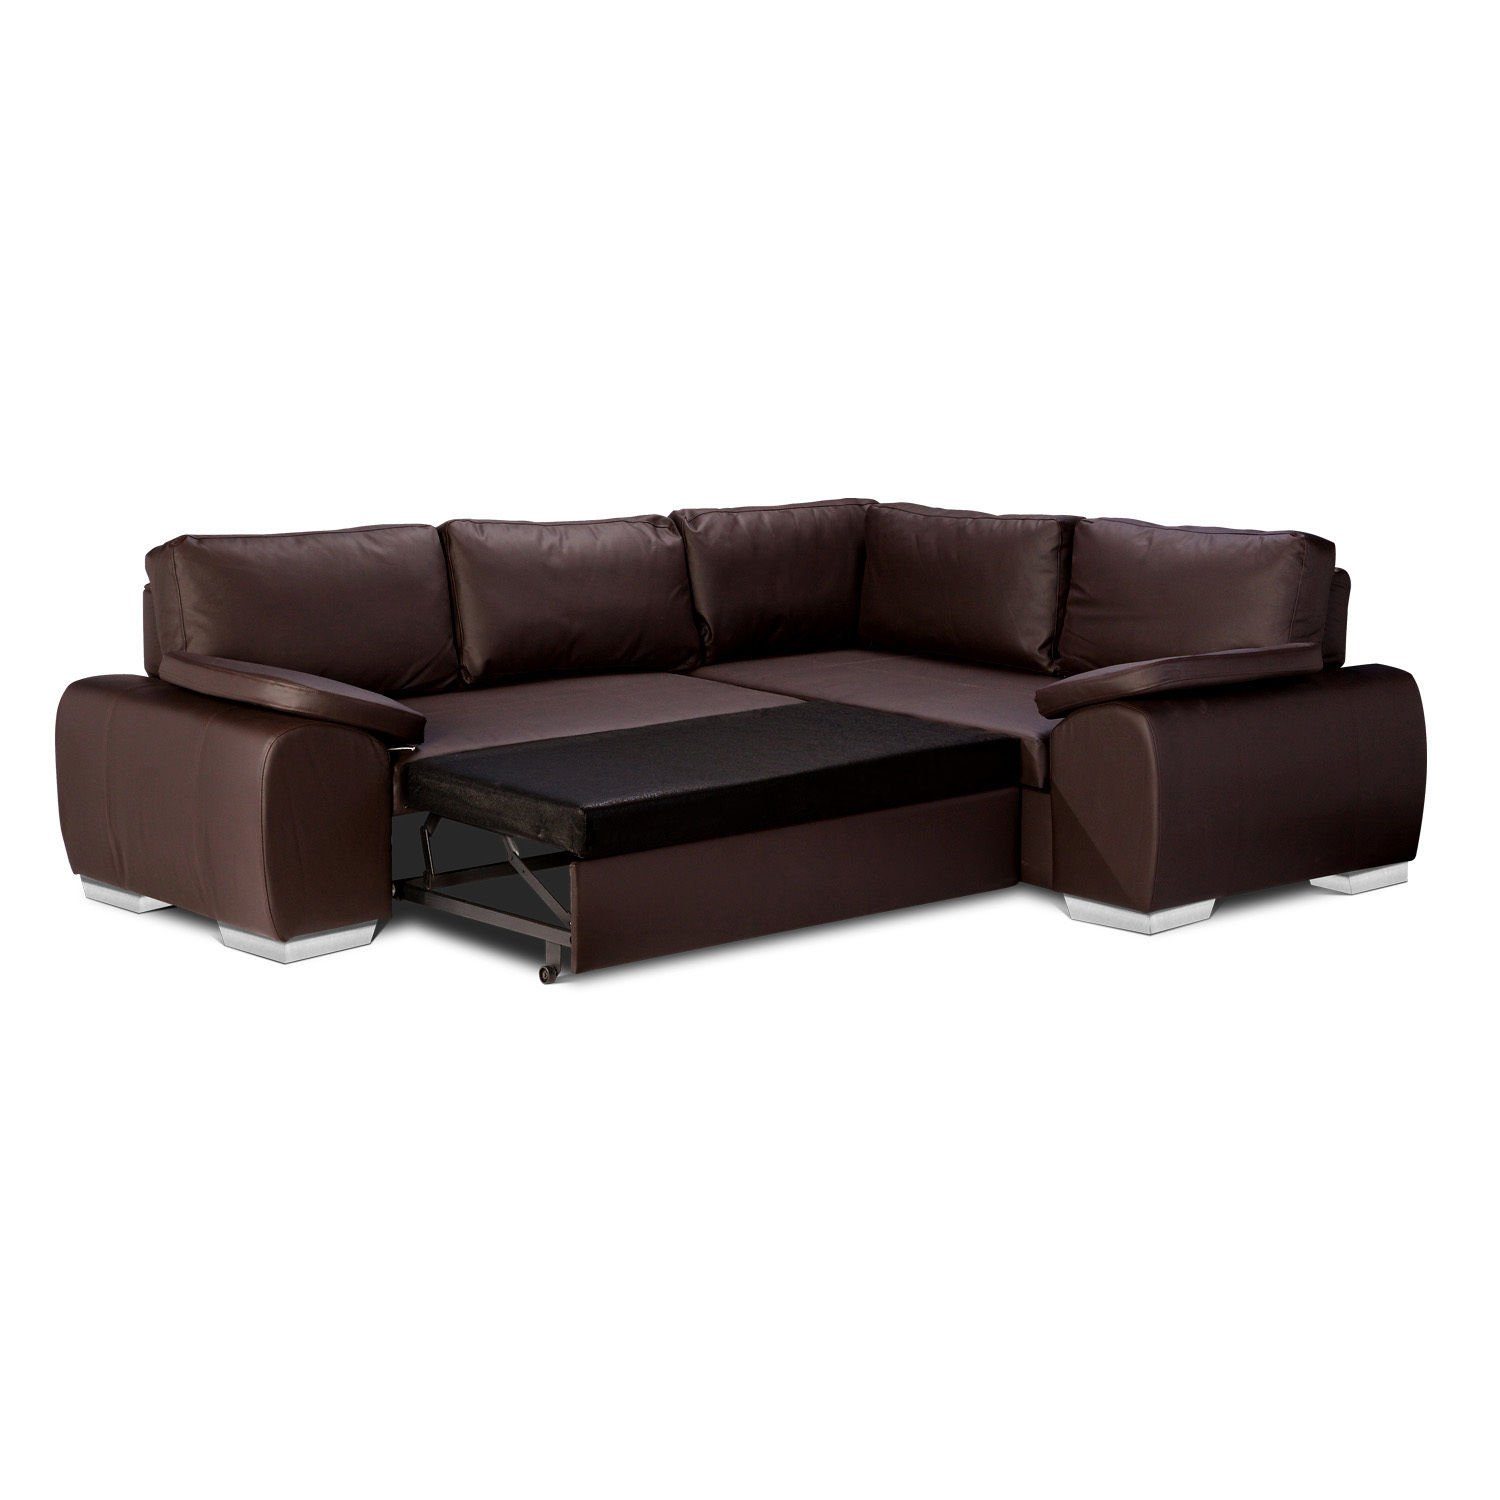 Elroy Corner Sofa Bed The Clearance Zone